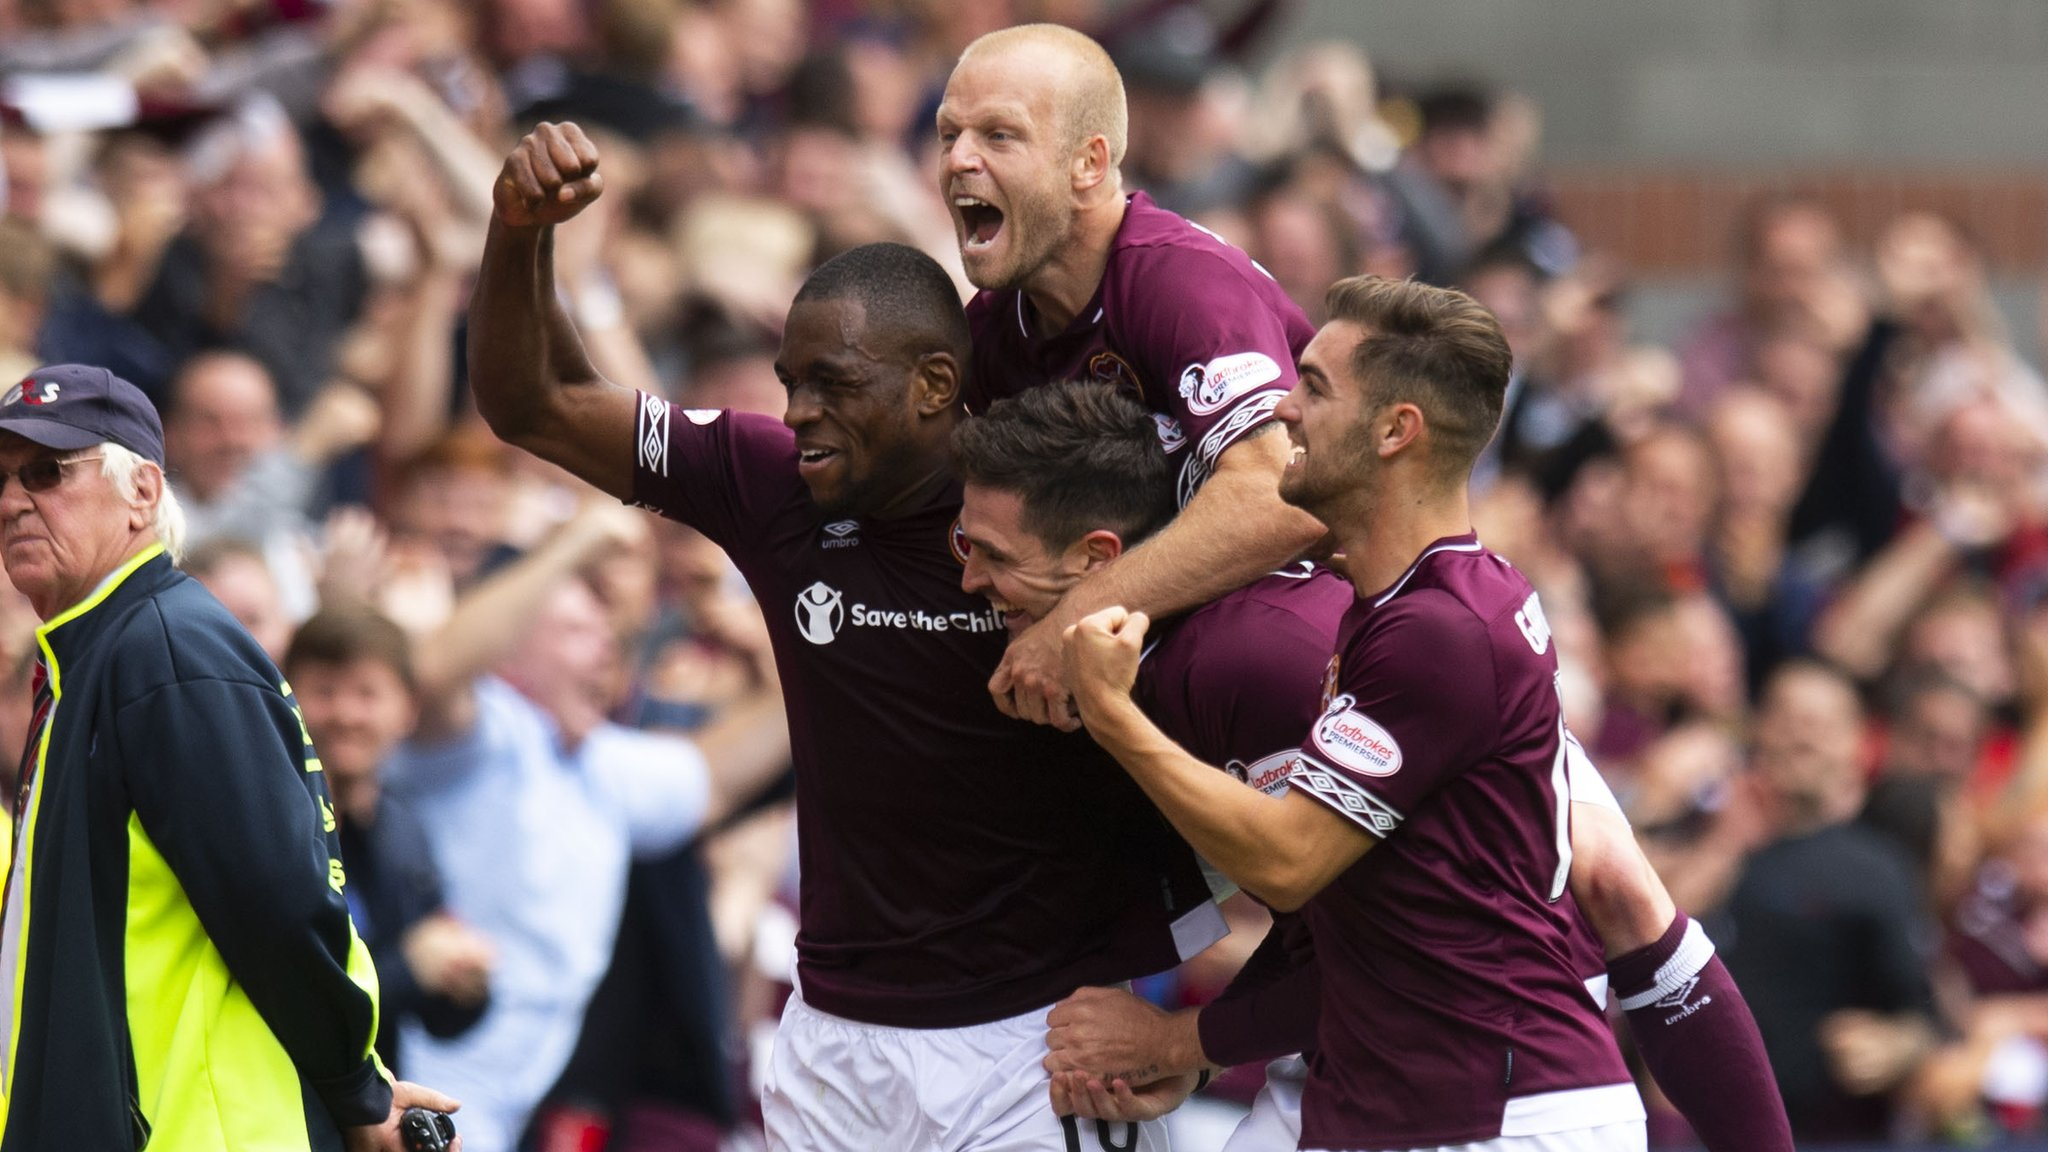 Hearts 1-0 Celtic: Kyle Lafferty's stunning strike seals win over champions